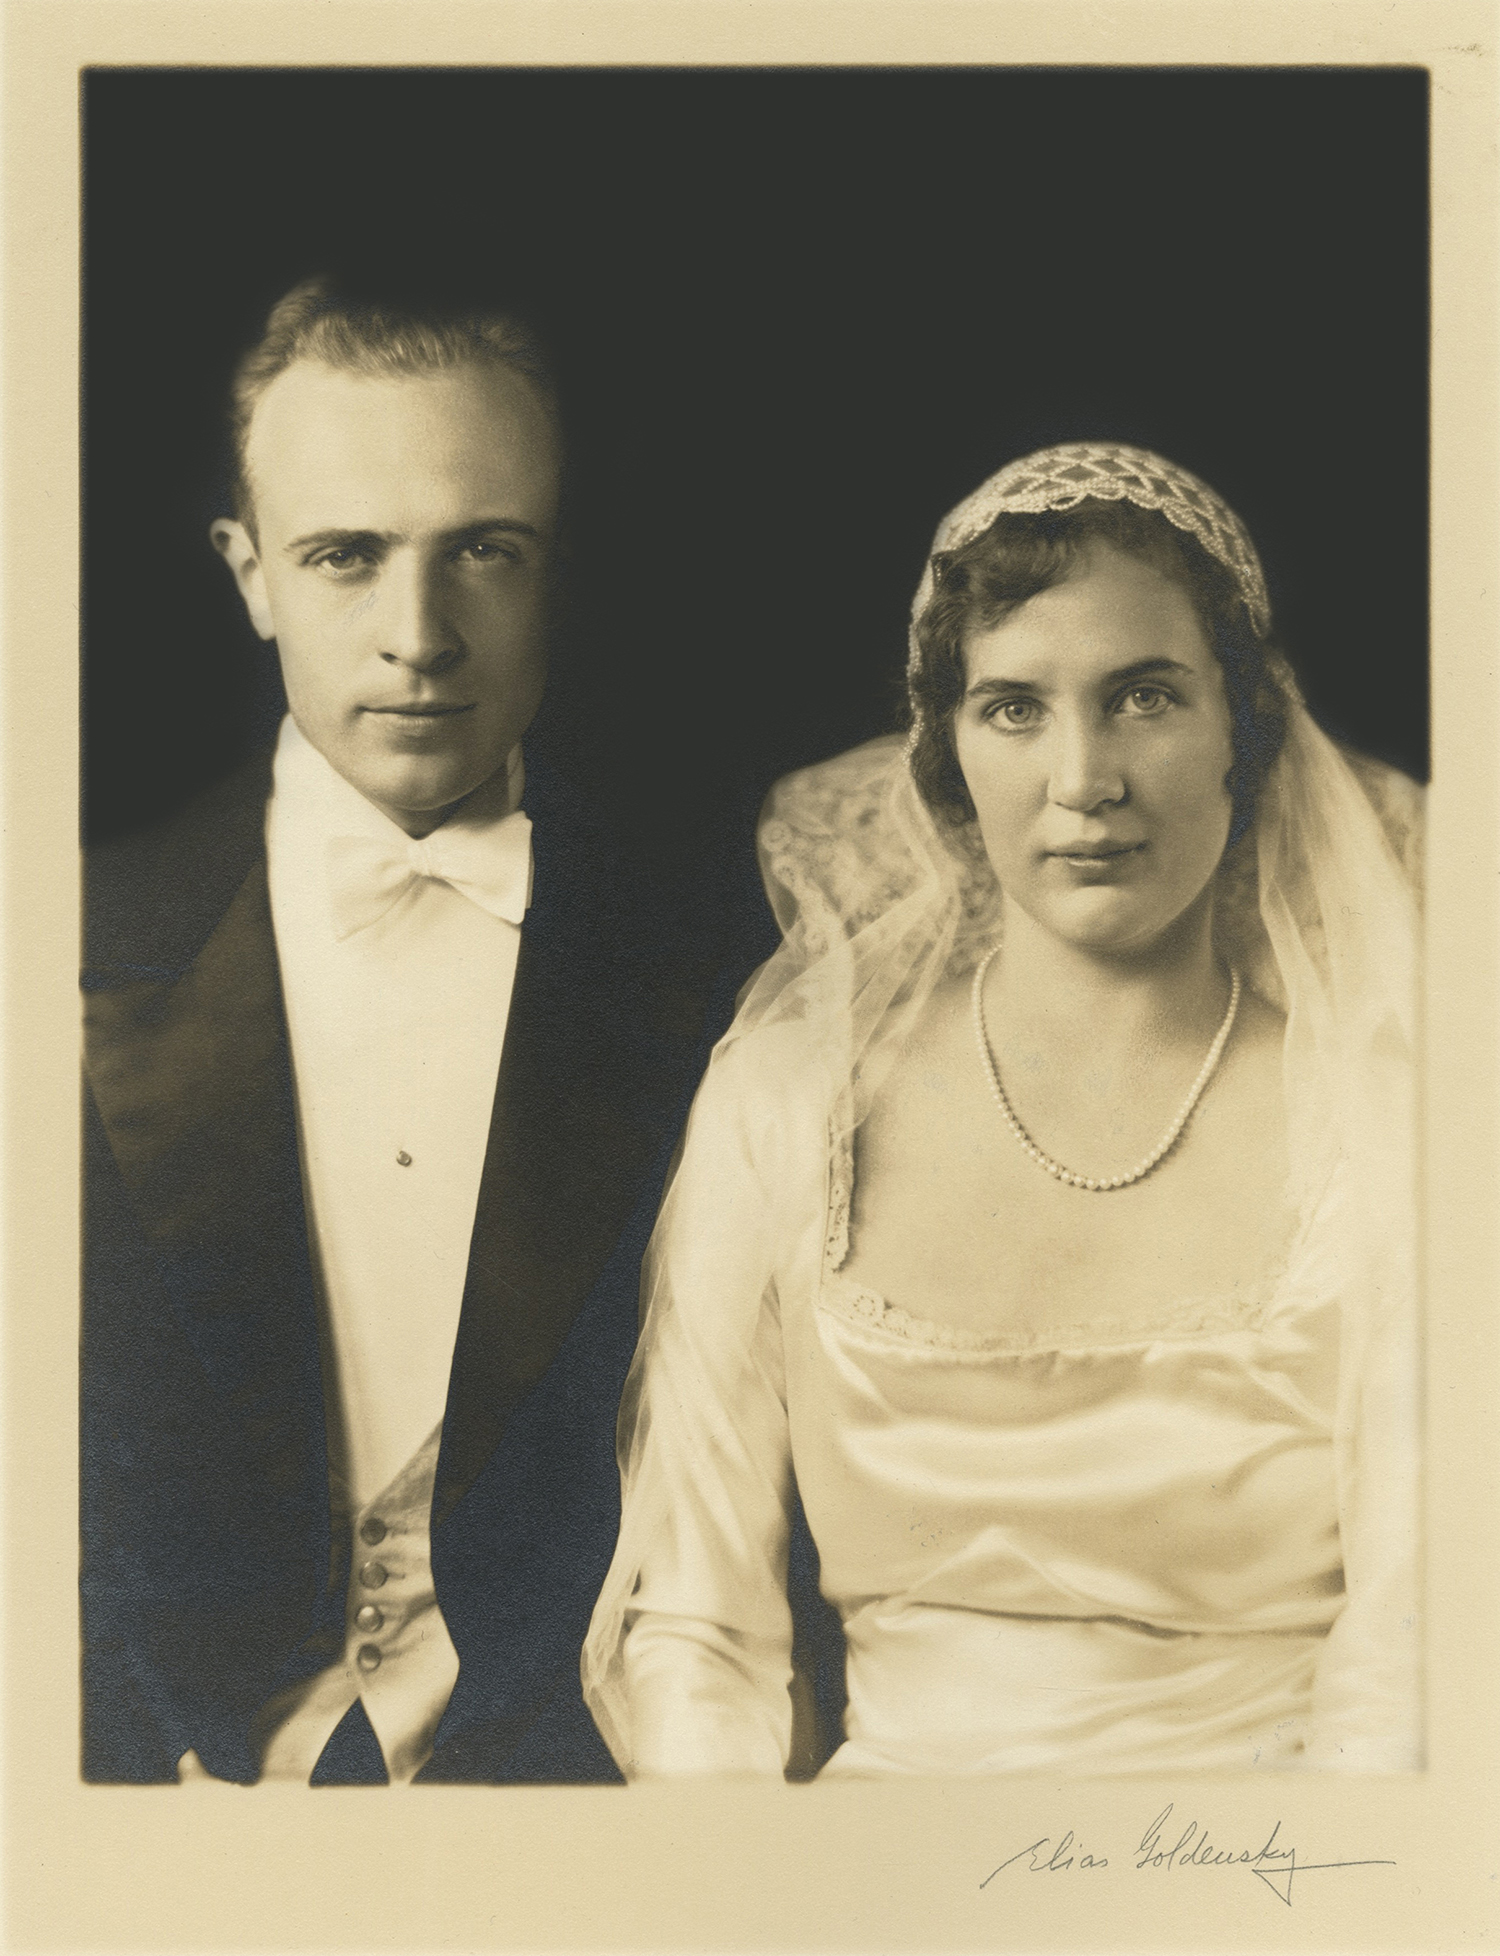 Figure 1: The Rev. Willard Dandridge Pendleton and Gabriele Pitcairn posing for their formal wedding portrait. Photograph by Elias Goldensky.